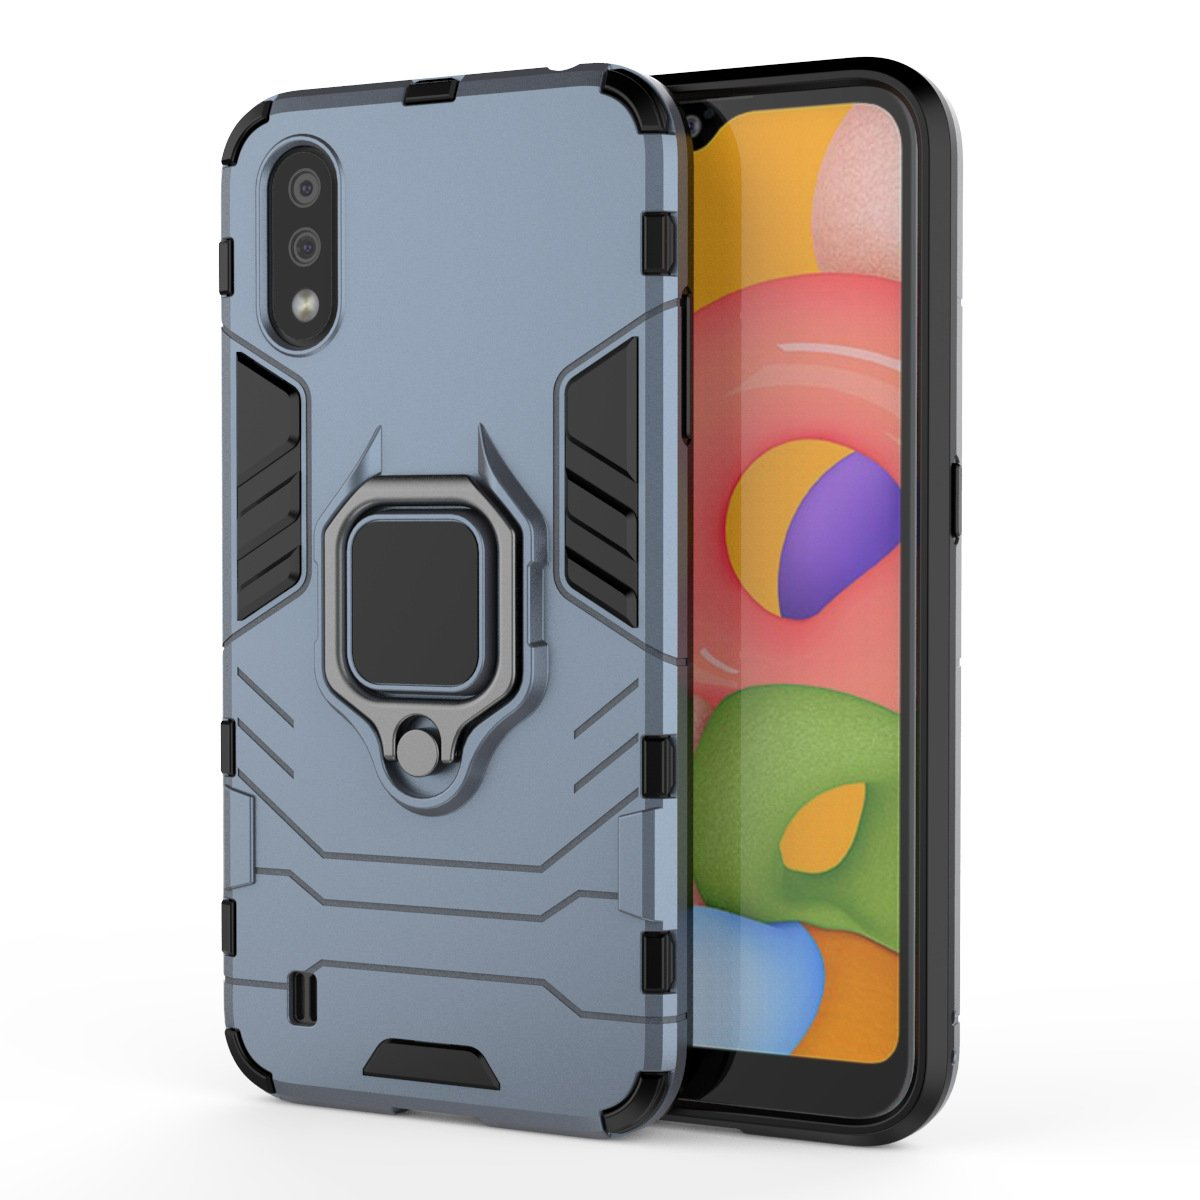 2020 Ultra-thin 4 in 1 Special Armor Case For Samsung A01/A11 (EU)